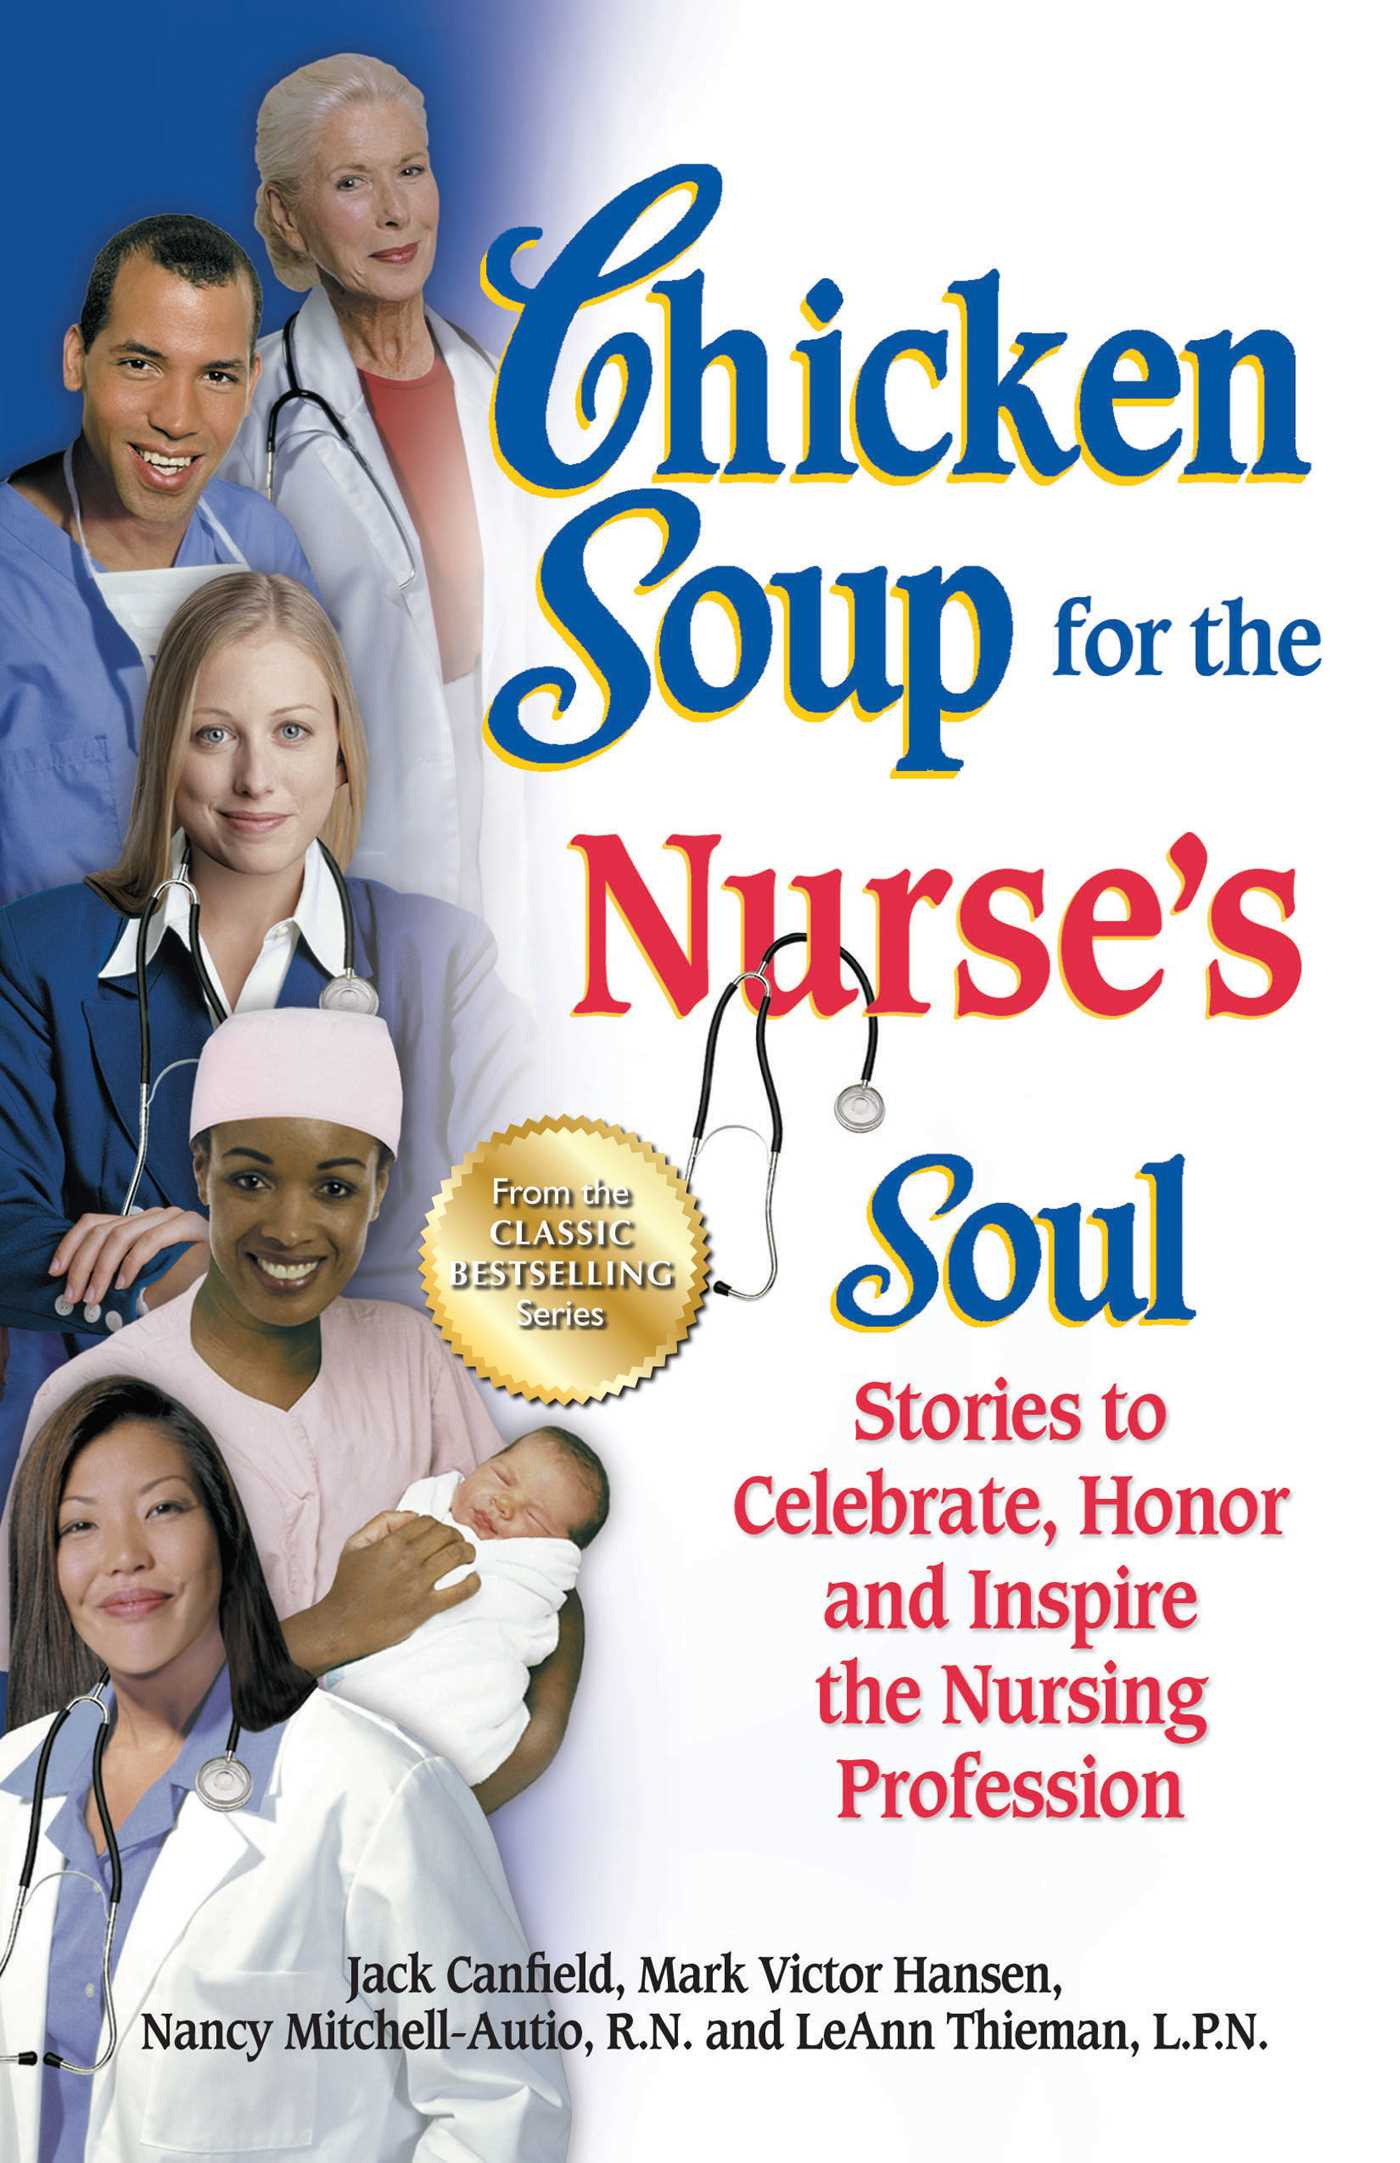 Chicken Soup for the Nurse's Soul Stories to Celebrate, Honor and Inspire the Nursing Profession